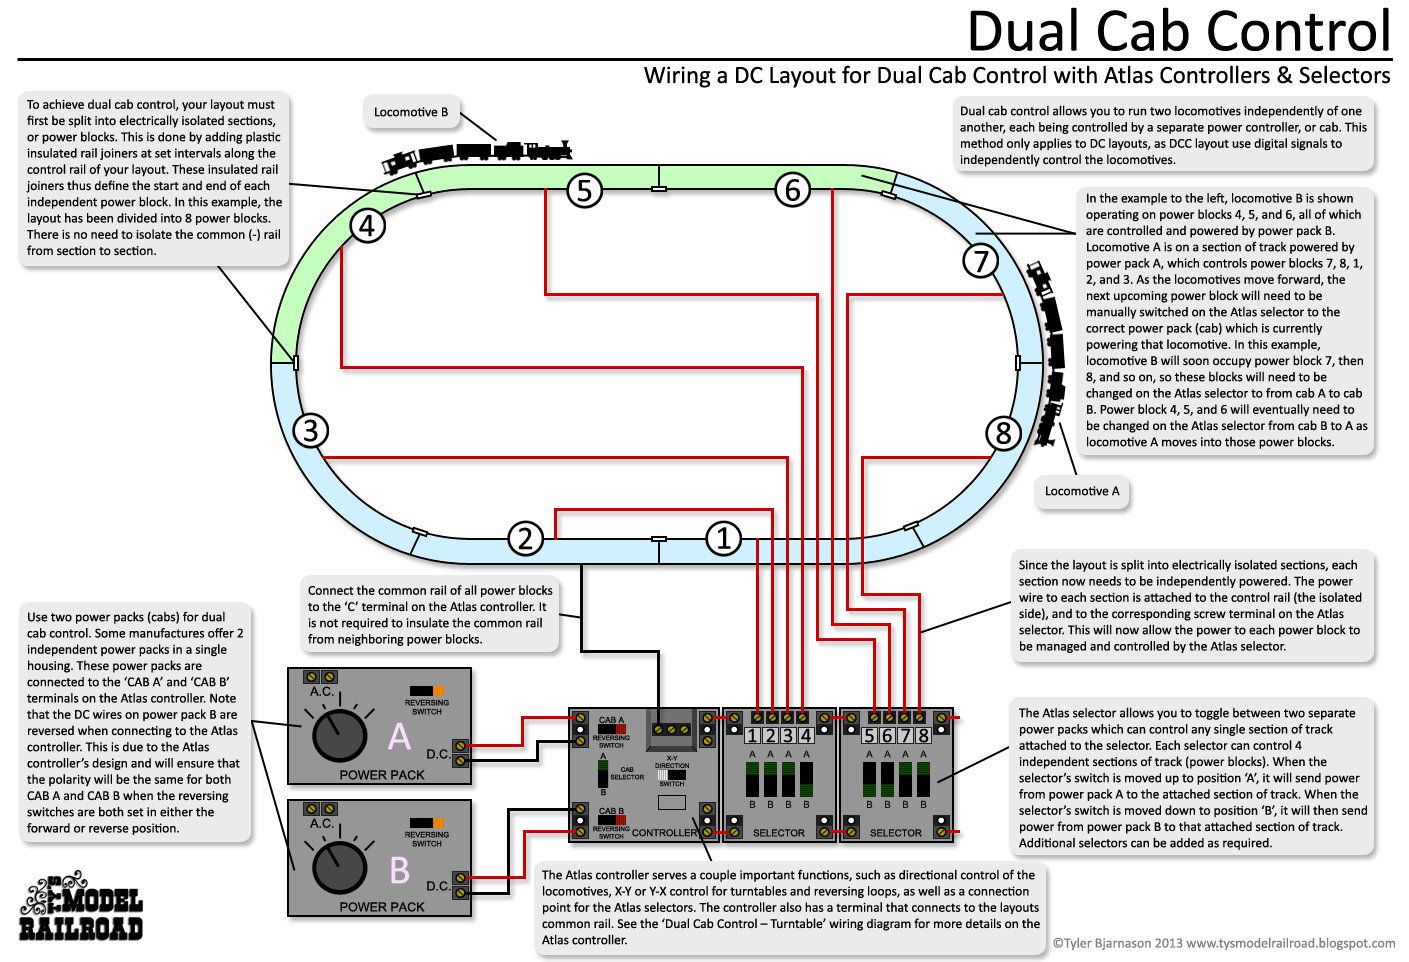 Dual Cab Control model railroad wiring diagrams control wiring diagrams \u2022 free dc wiring diagrams at honlapkeszites.co